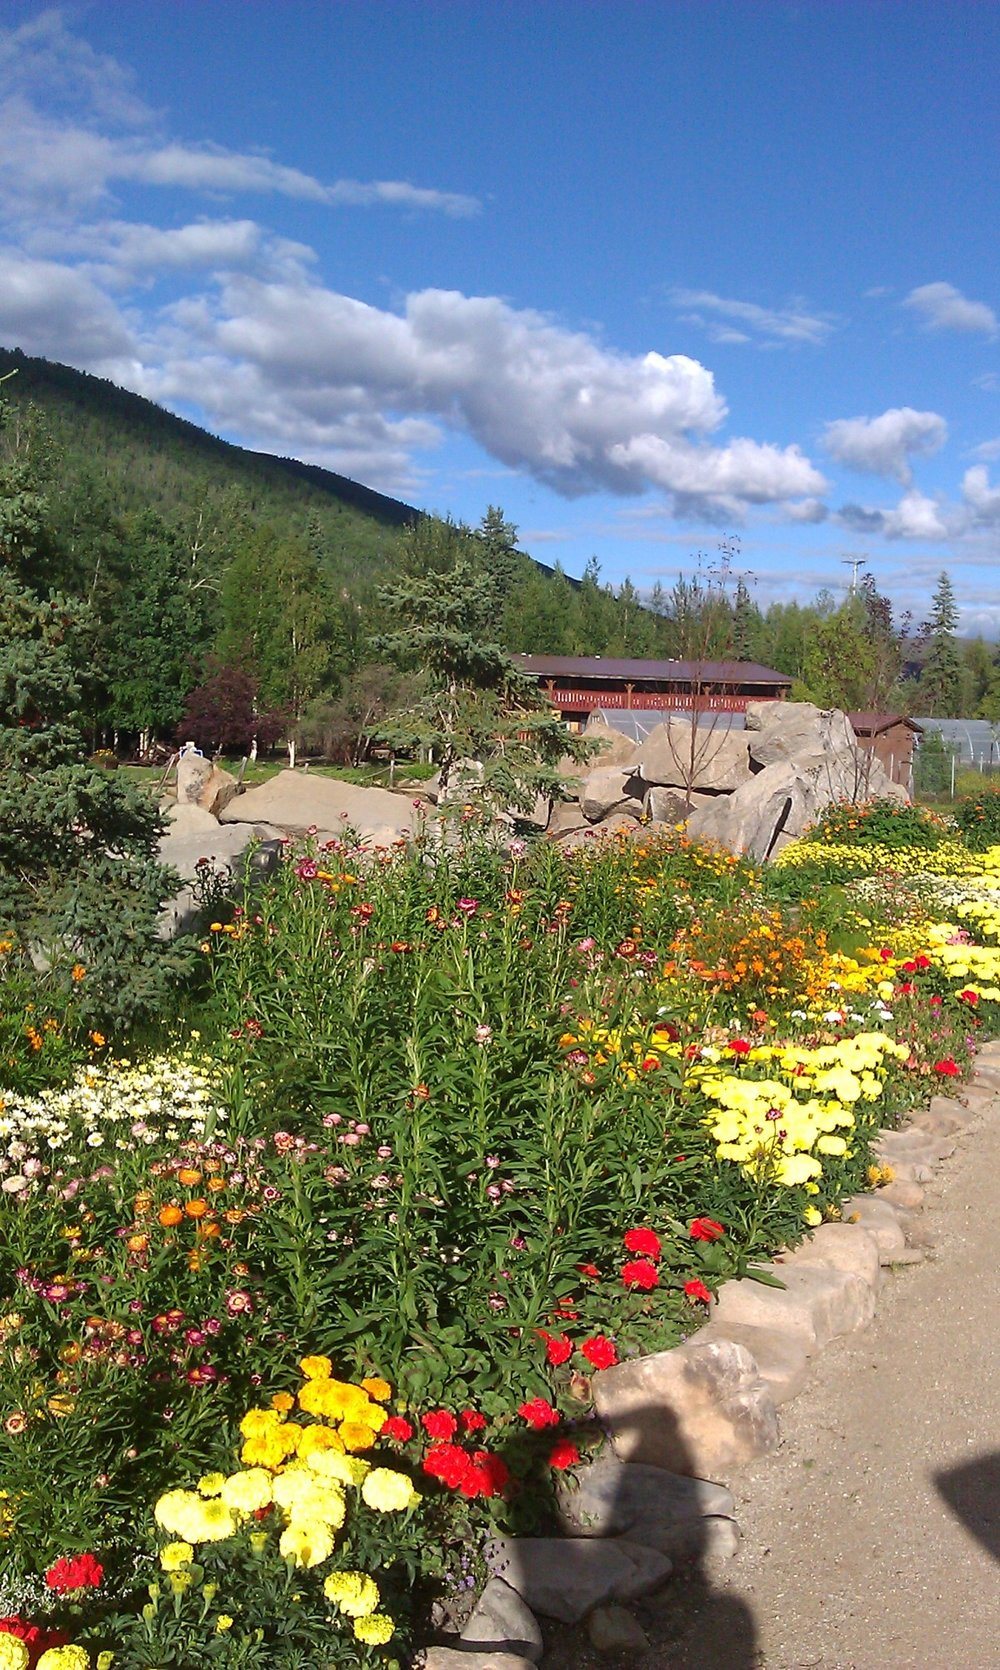 Chena hot springs in full bloom chena hot springs chena flowers mightylinksfo